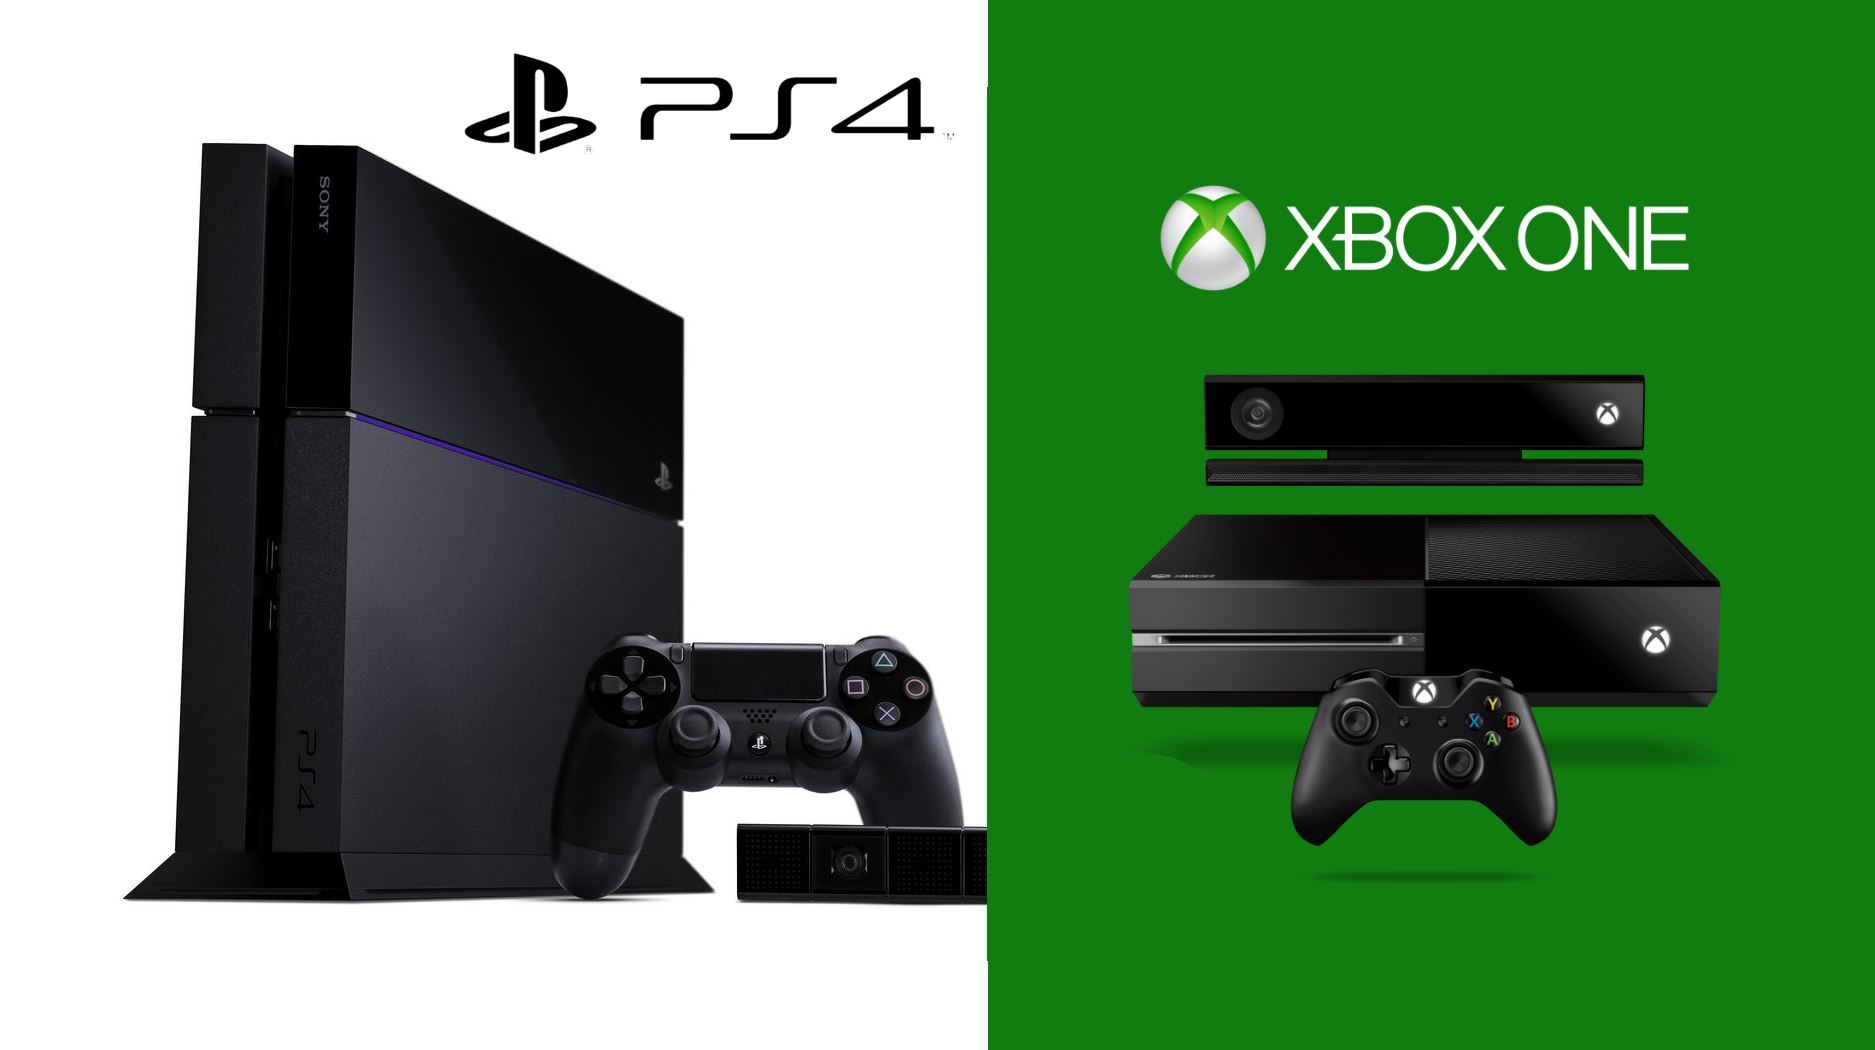 Xbox One Trumps Sony's PlayStation 4 In Spite of Price Reductions